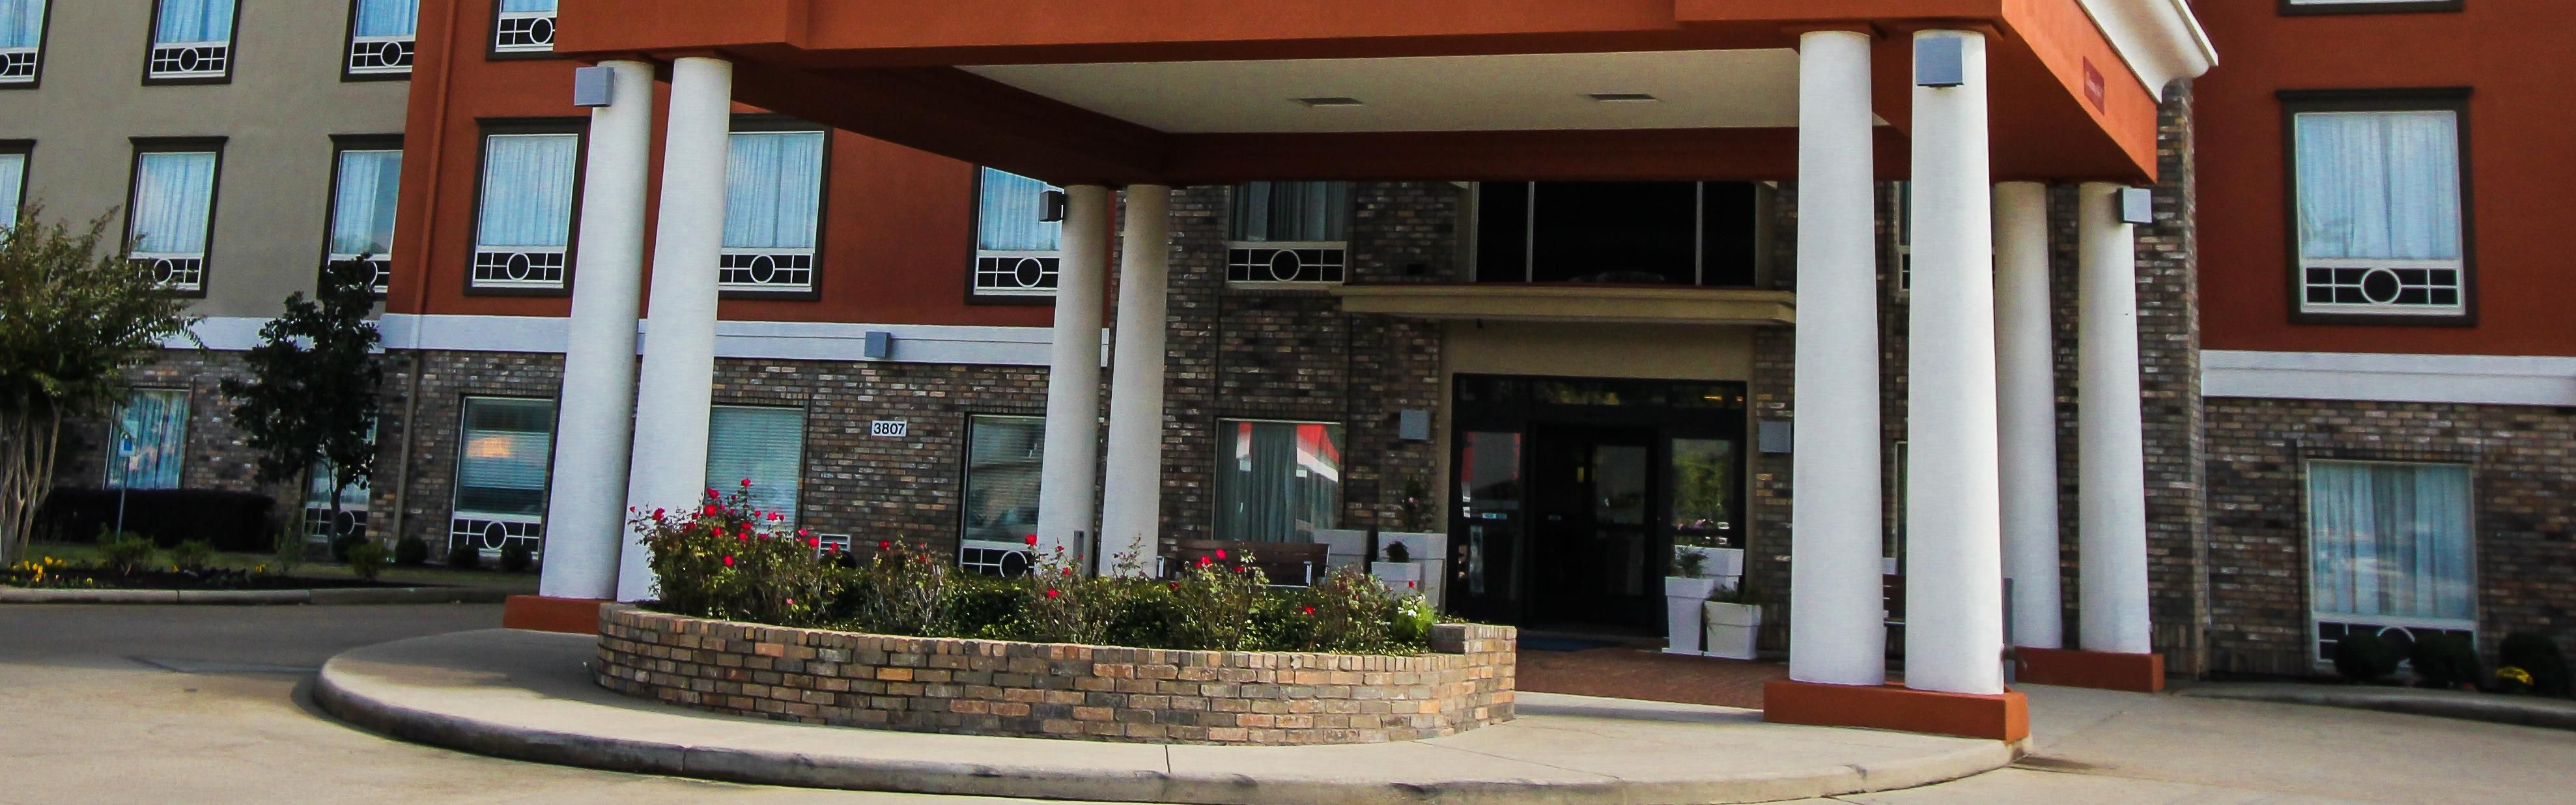 Hotels And Motels In Nacogdoches Texas